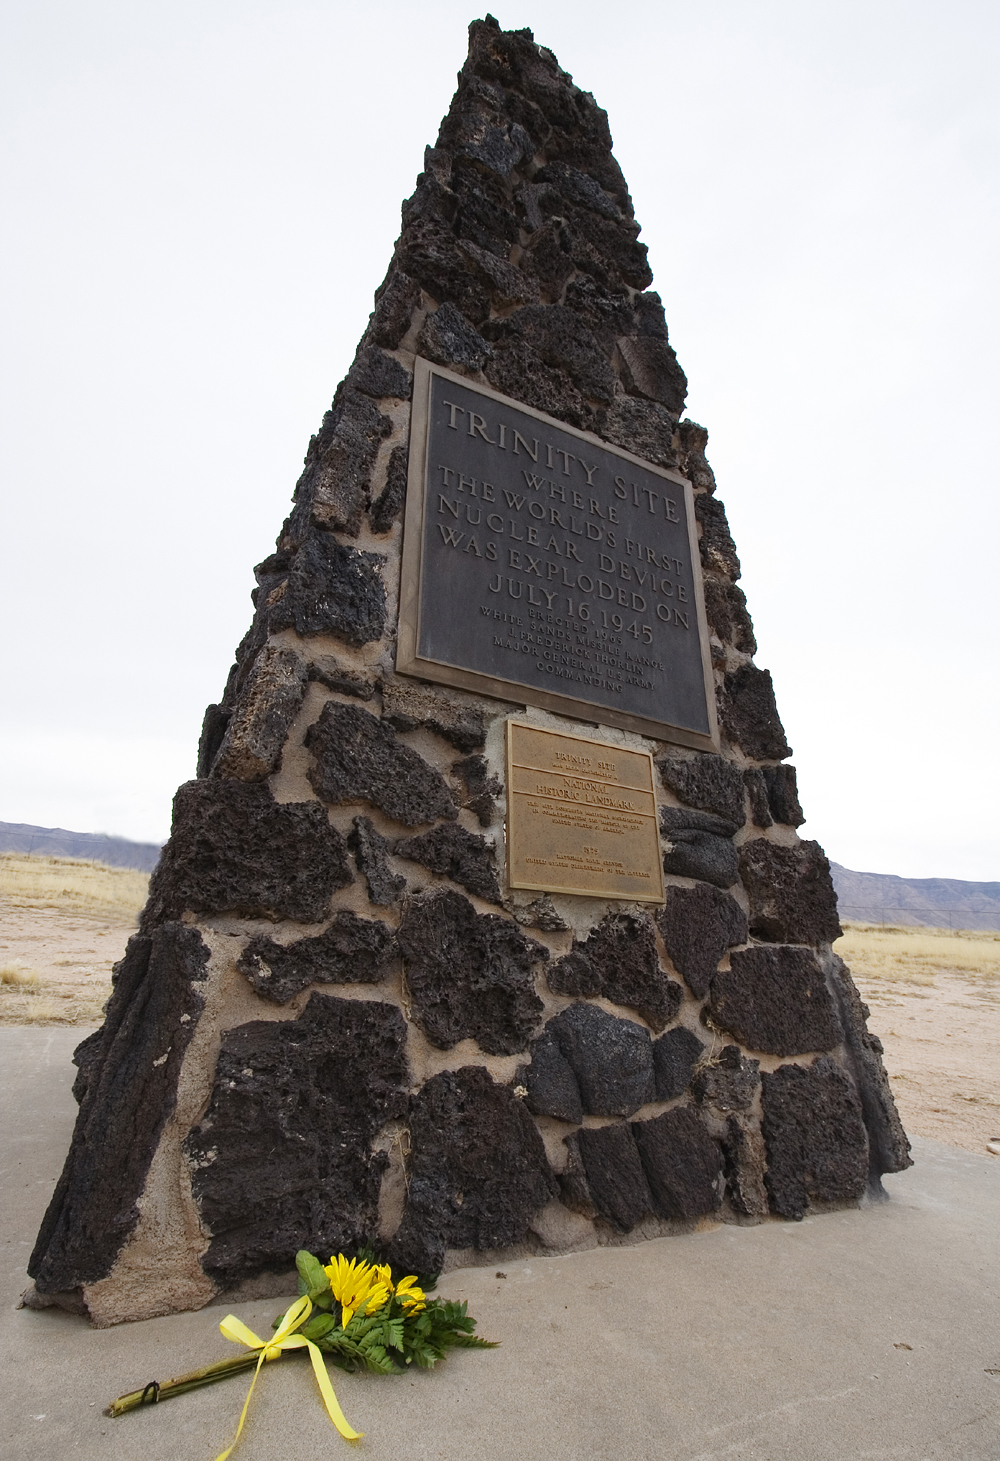 The Trinity Site Pyramid Monument